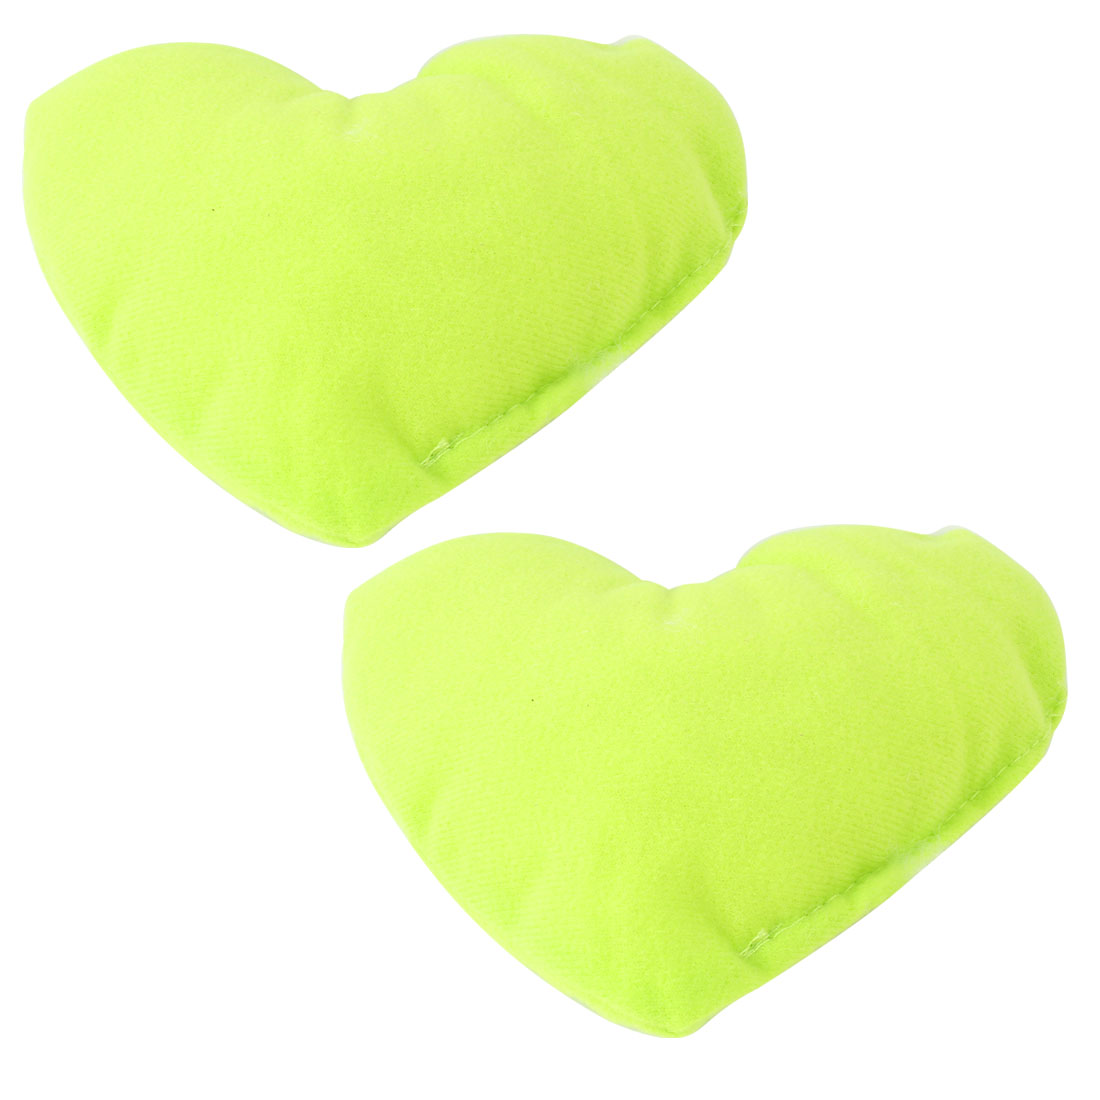 2pcs Green Fleece Heart Design Neck Pillow Cushion Pad for Doggy Pet Cat Yorkie